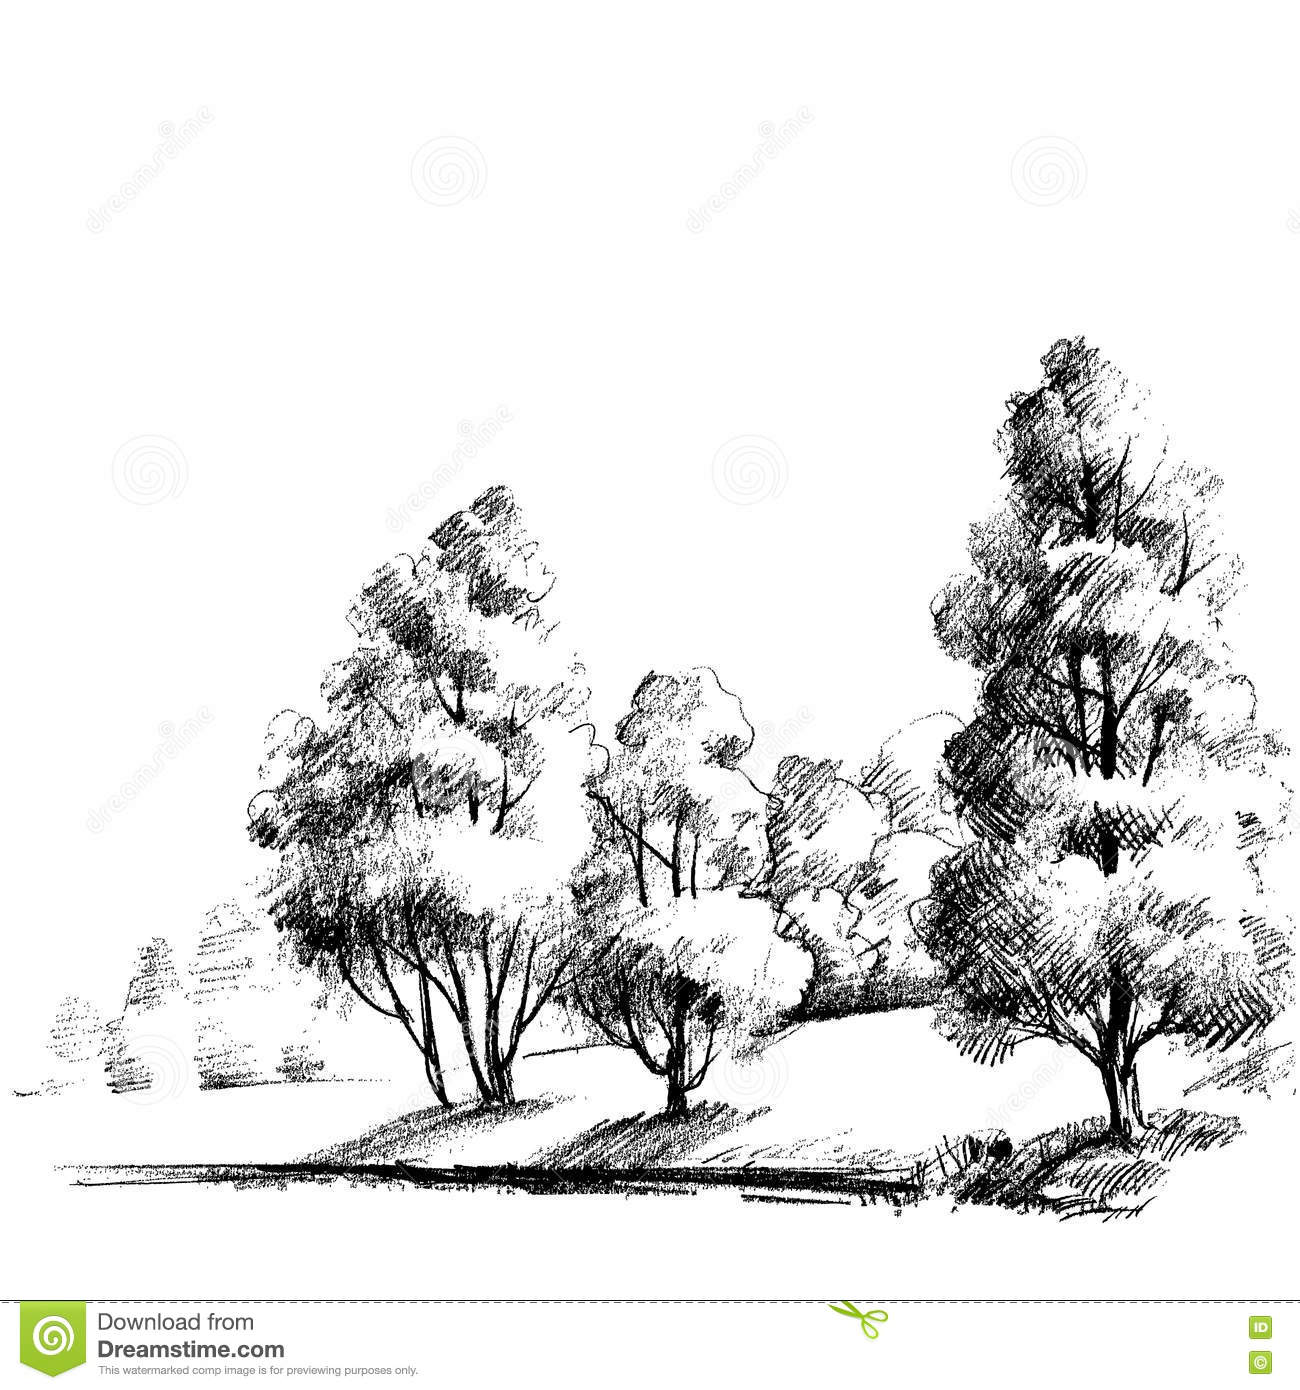 Forest Sketch Stock Vector - Image: 79259367